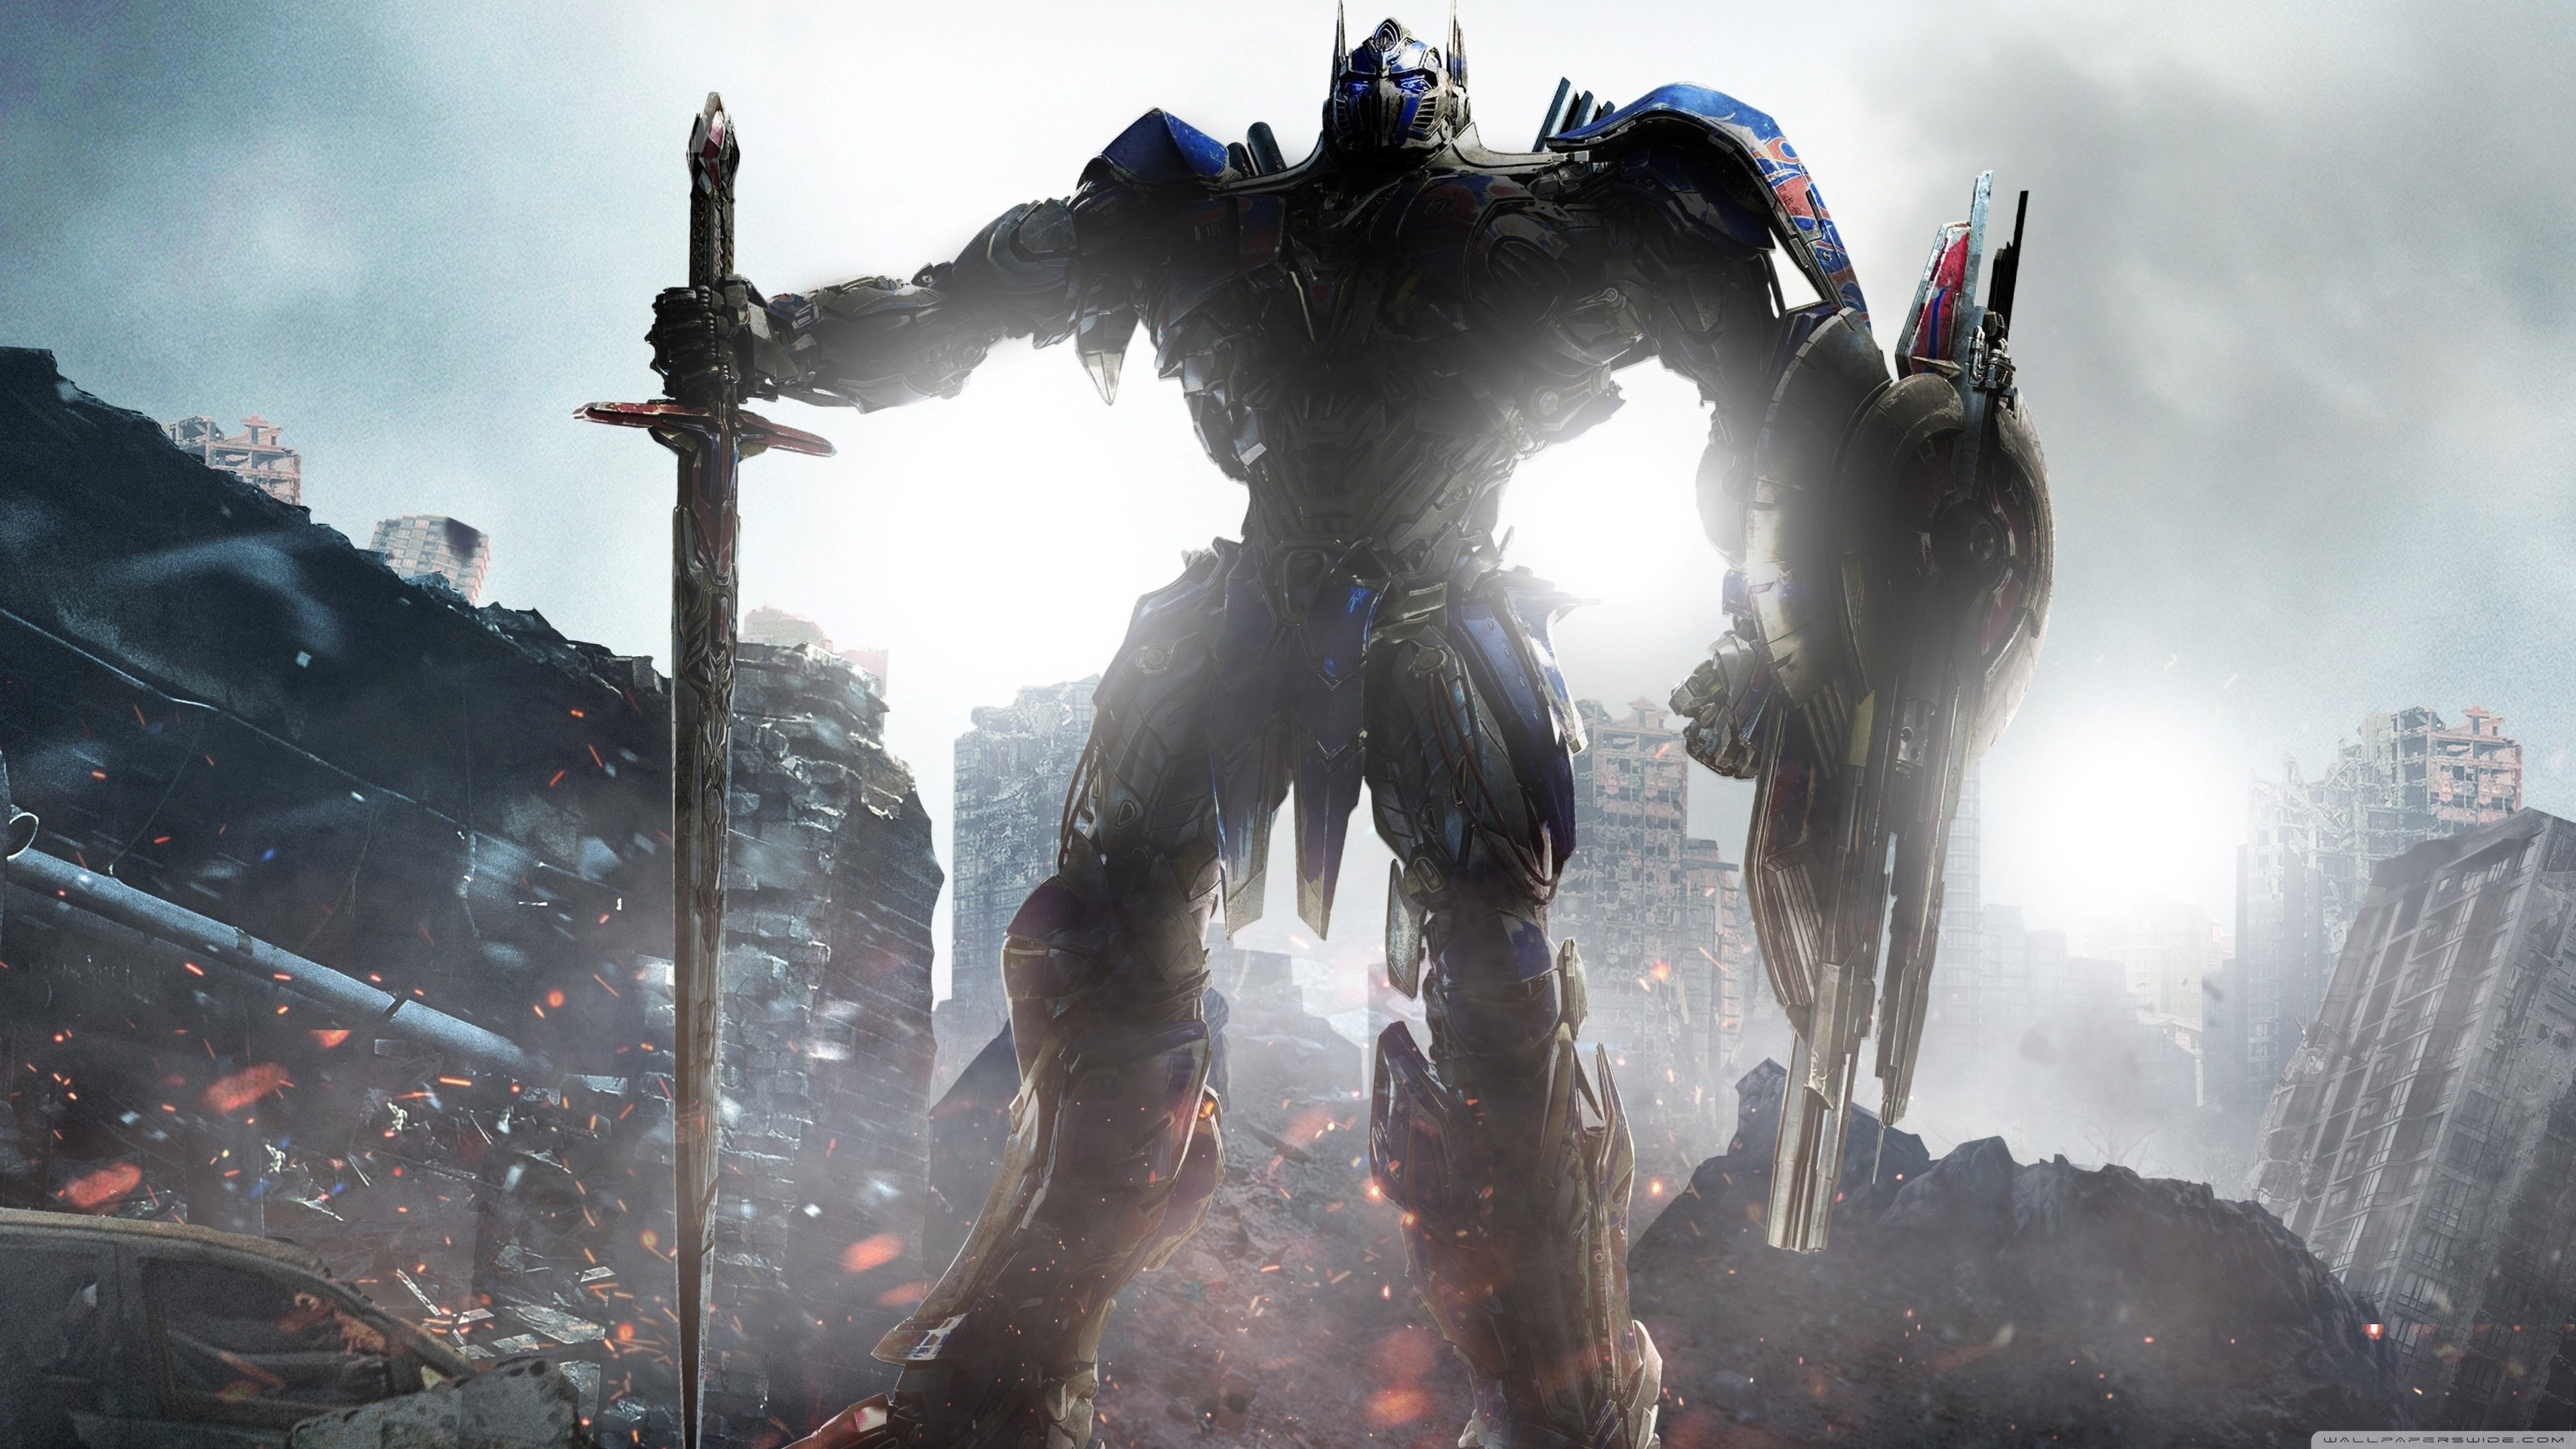 Transformers The Last Knight Optimus Prime 2017 Movie Ultra Hd